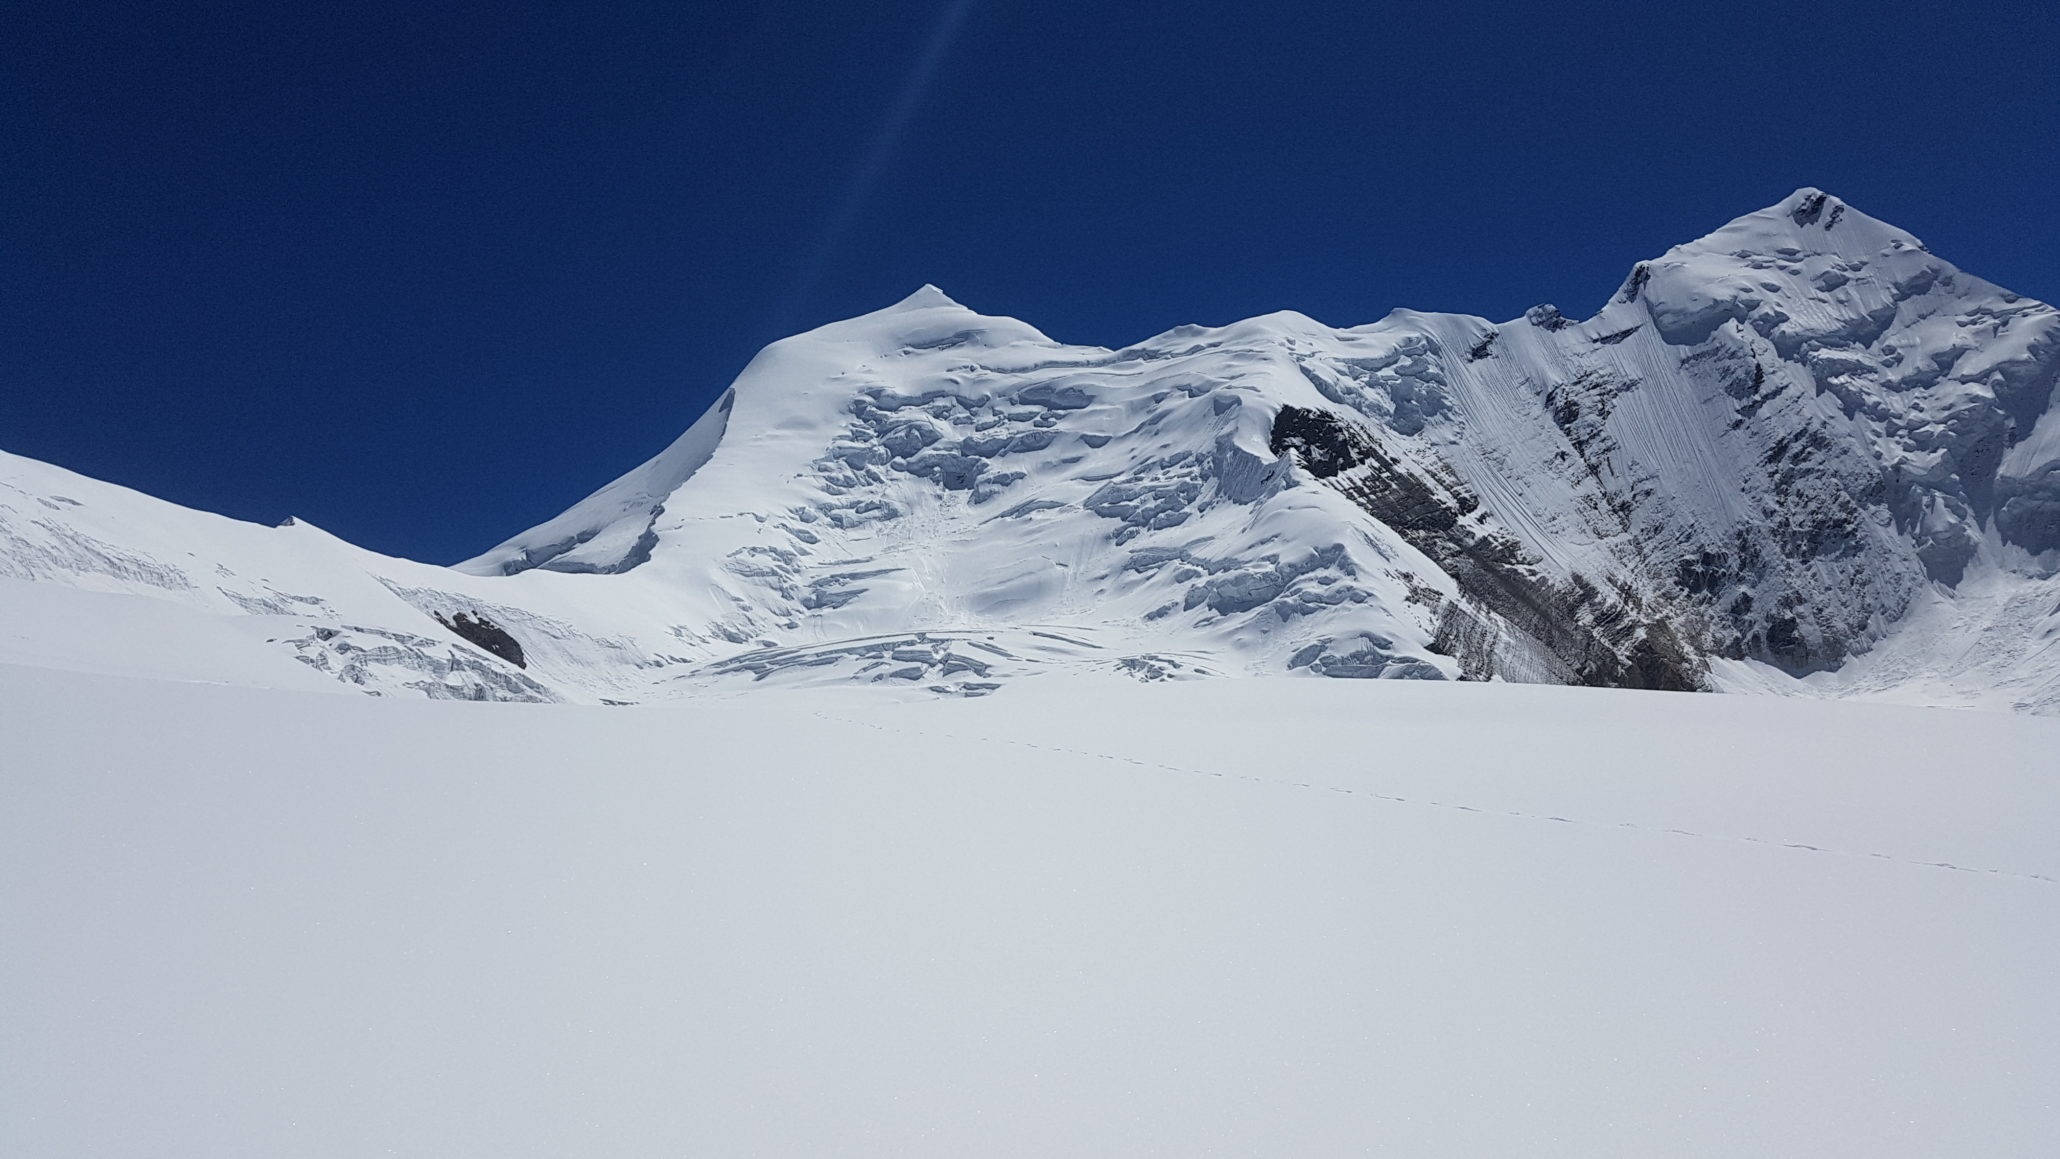 a picture of a himalayas mountain covered with snow